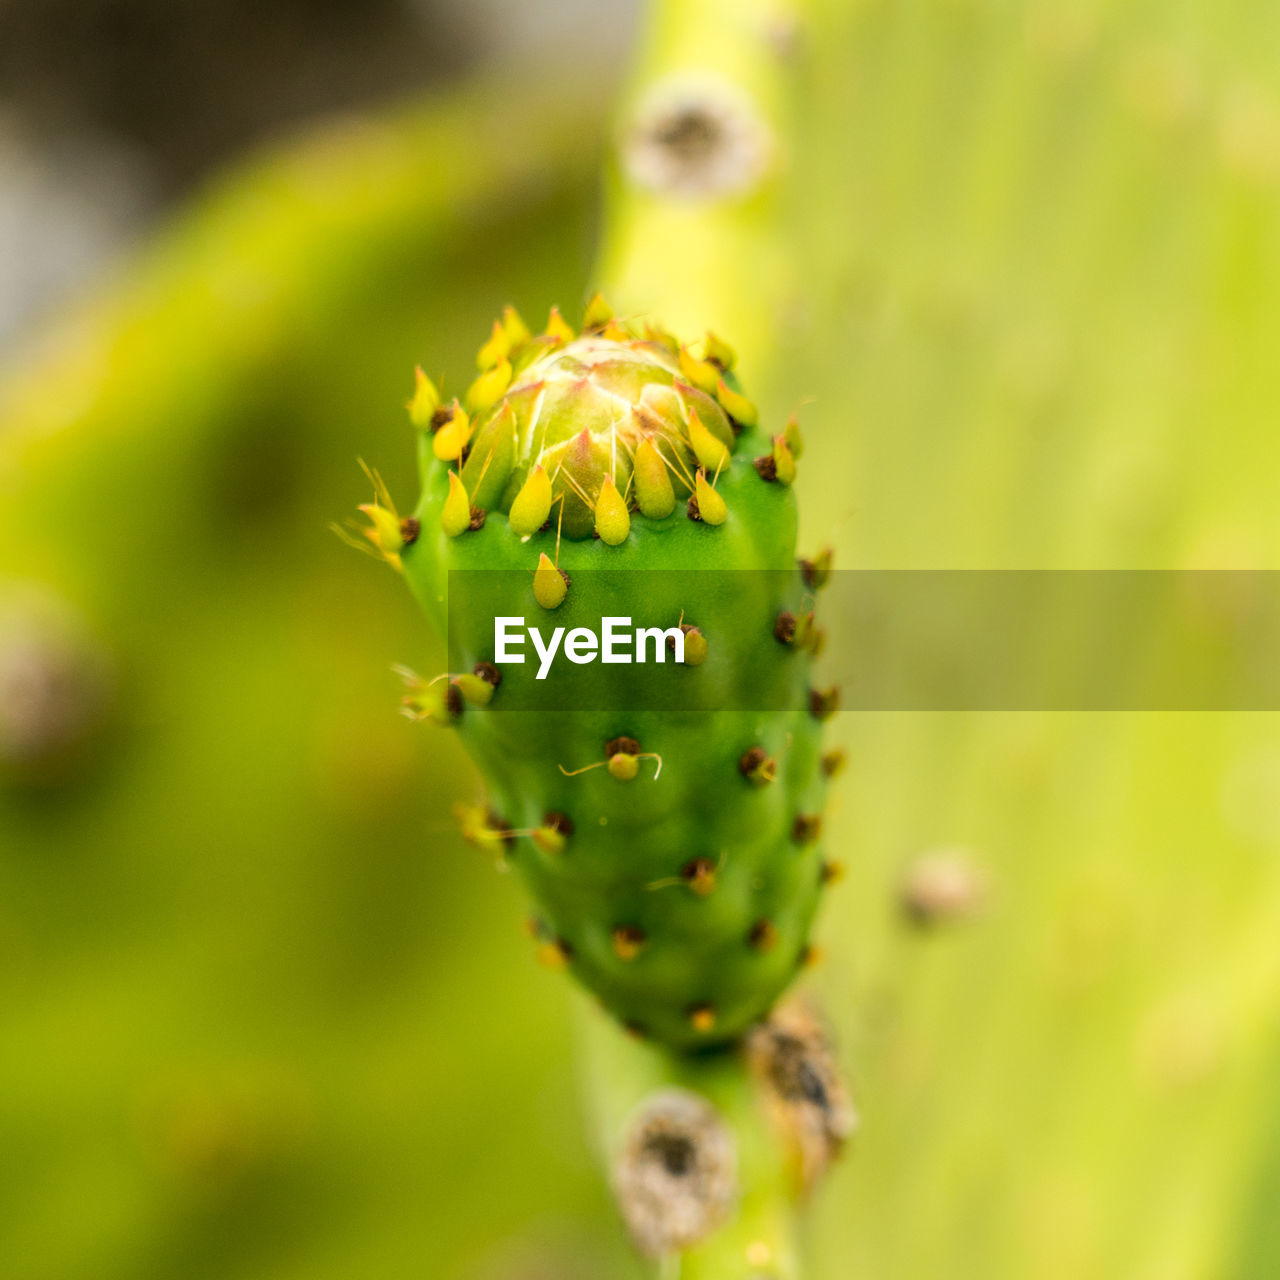 green color, plant, growth, close-up, beauty in nature, nature, no people, flower, day, focus on foreground, cactus, selective focus, succulent plant, freshness, outdoors, flowering plant, bud, beginnings, spiked, thorn